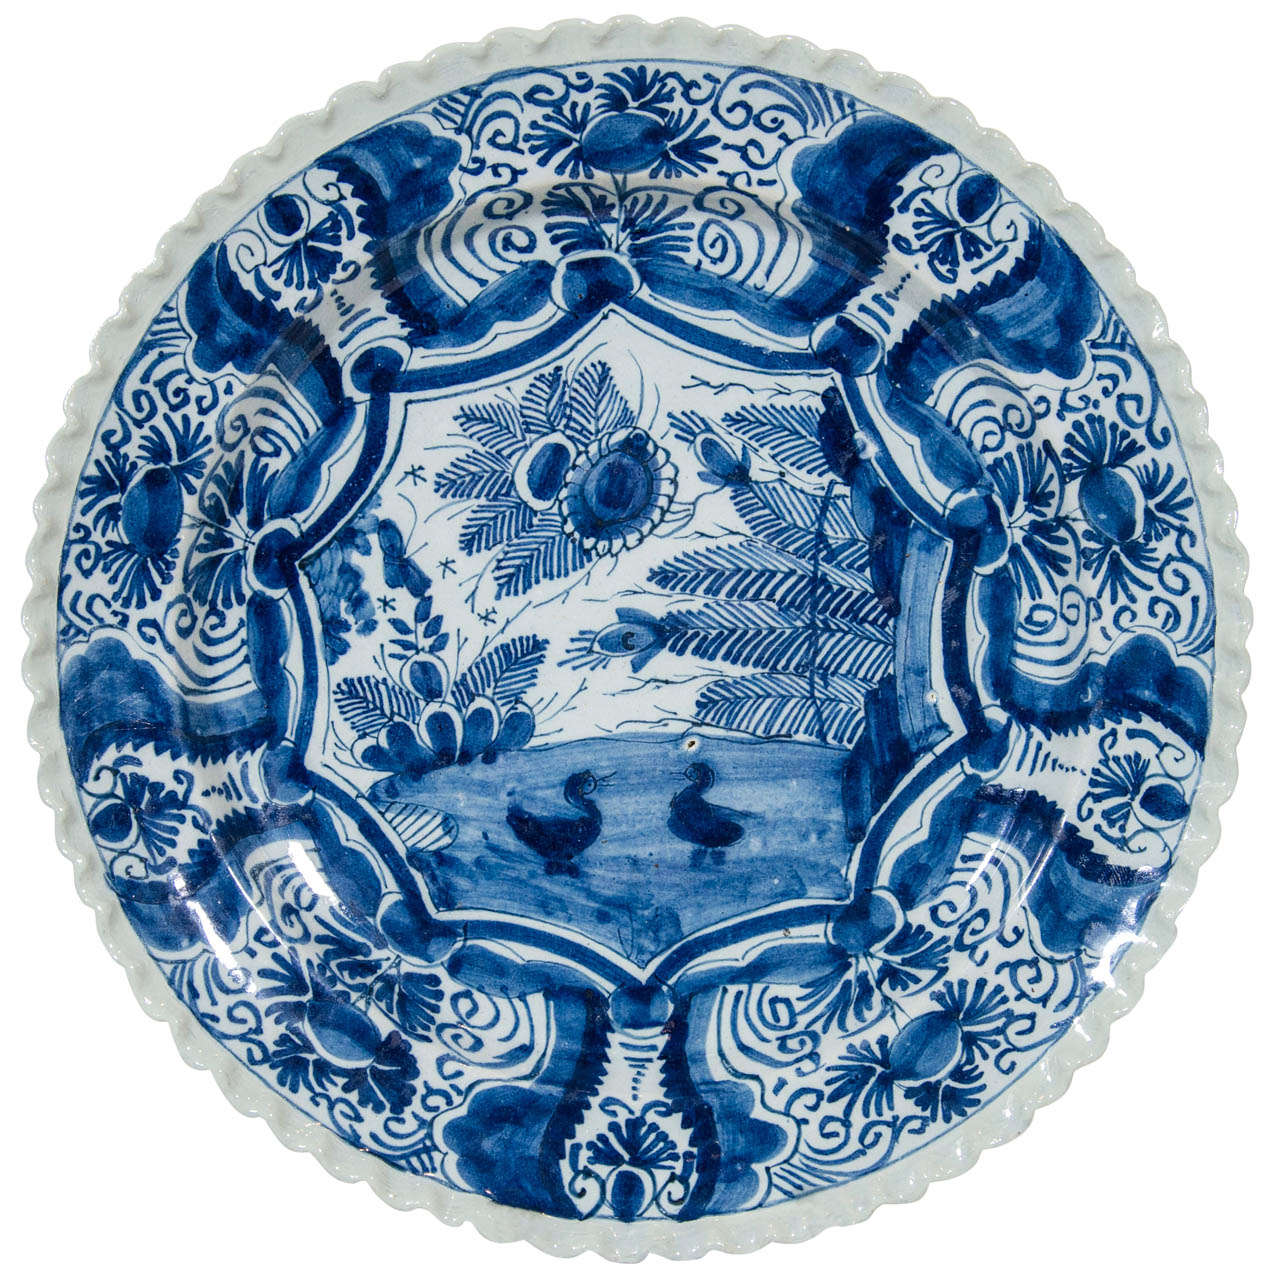 An 18th Century Blue And White Dutch Delft Charger At 1stdibs